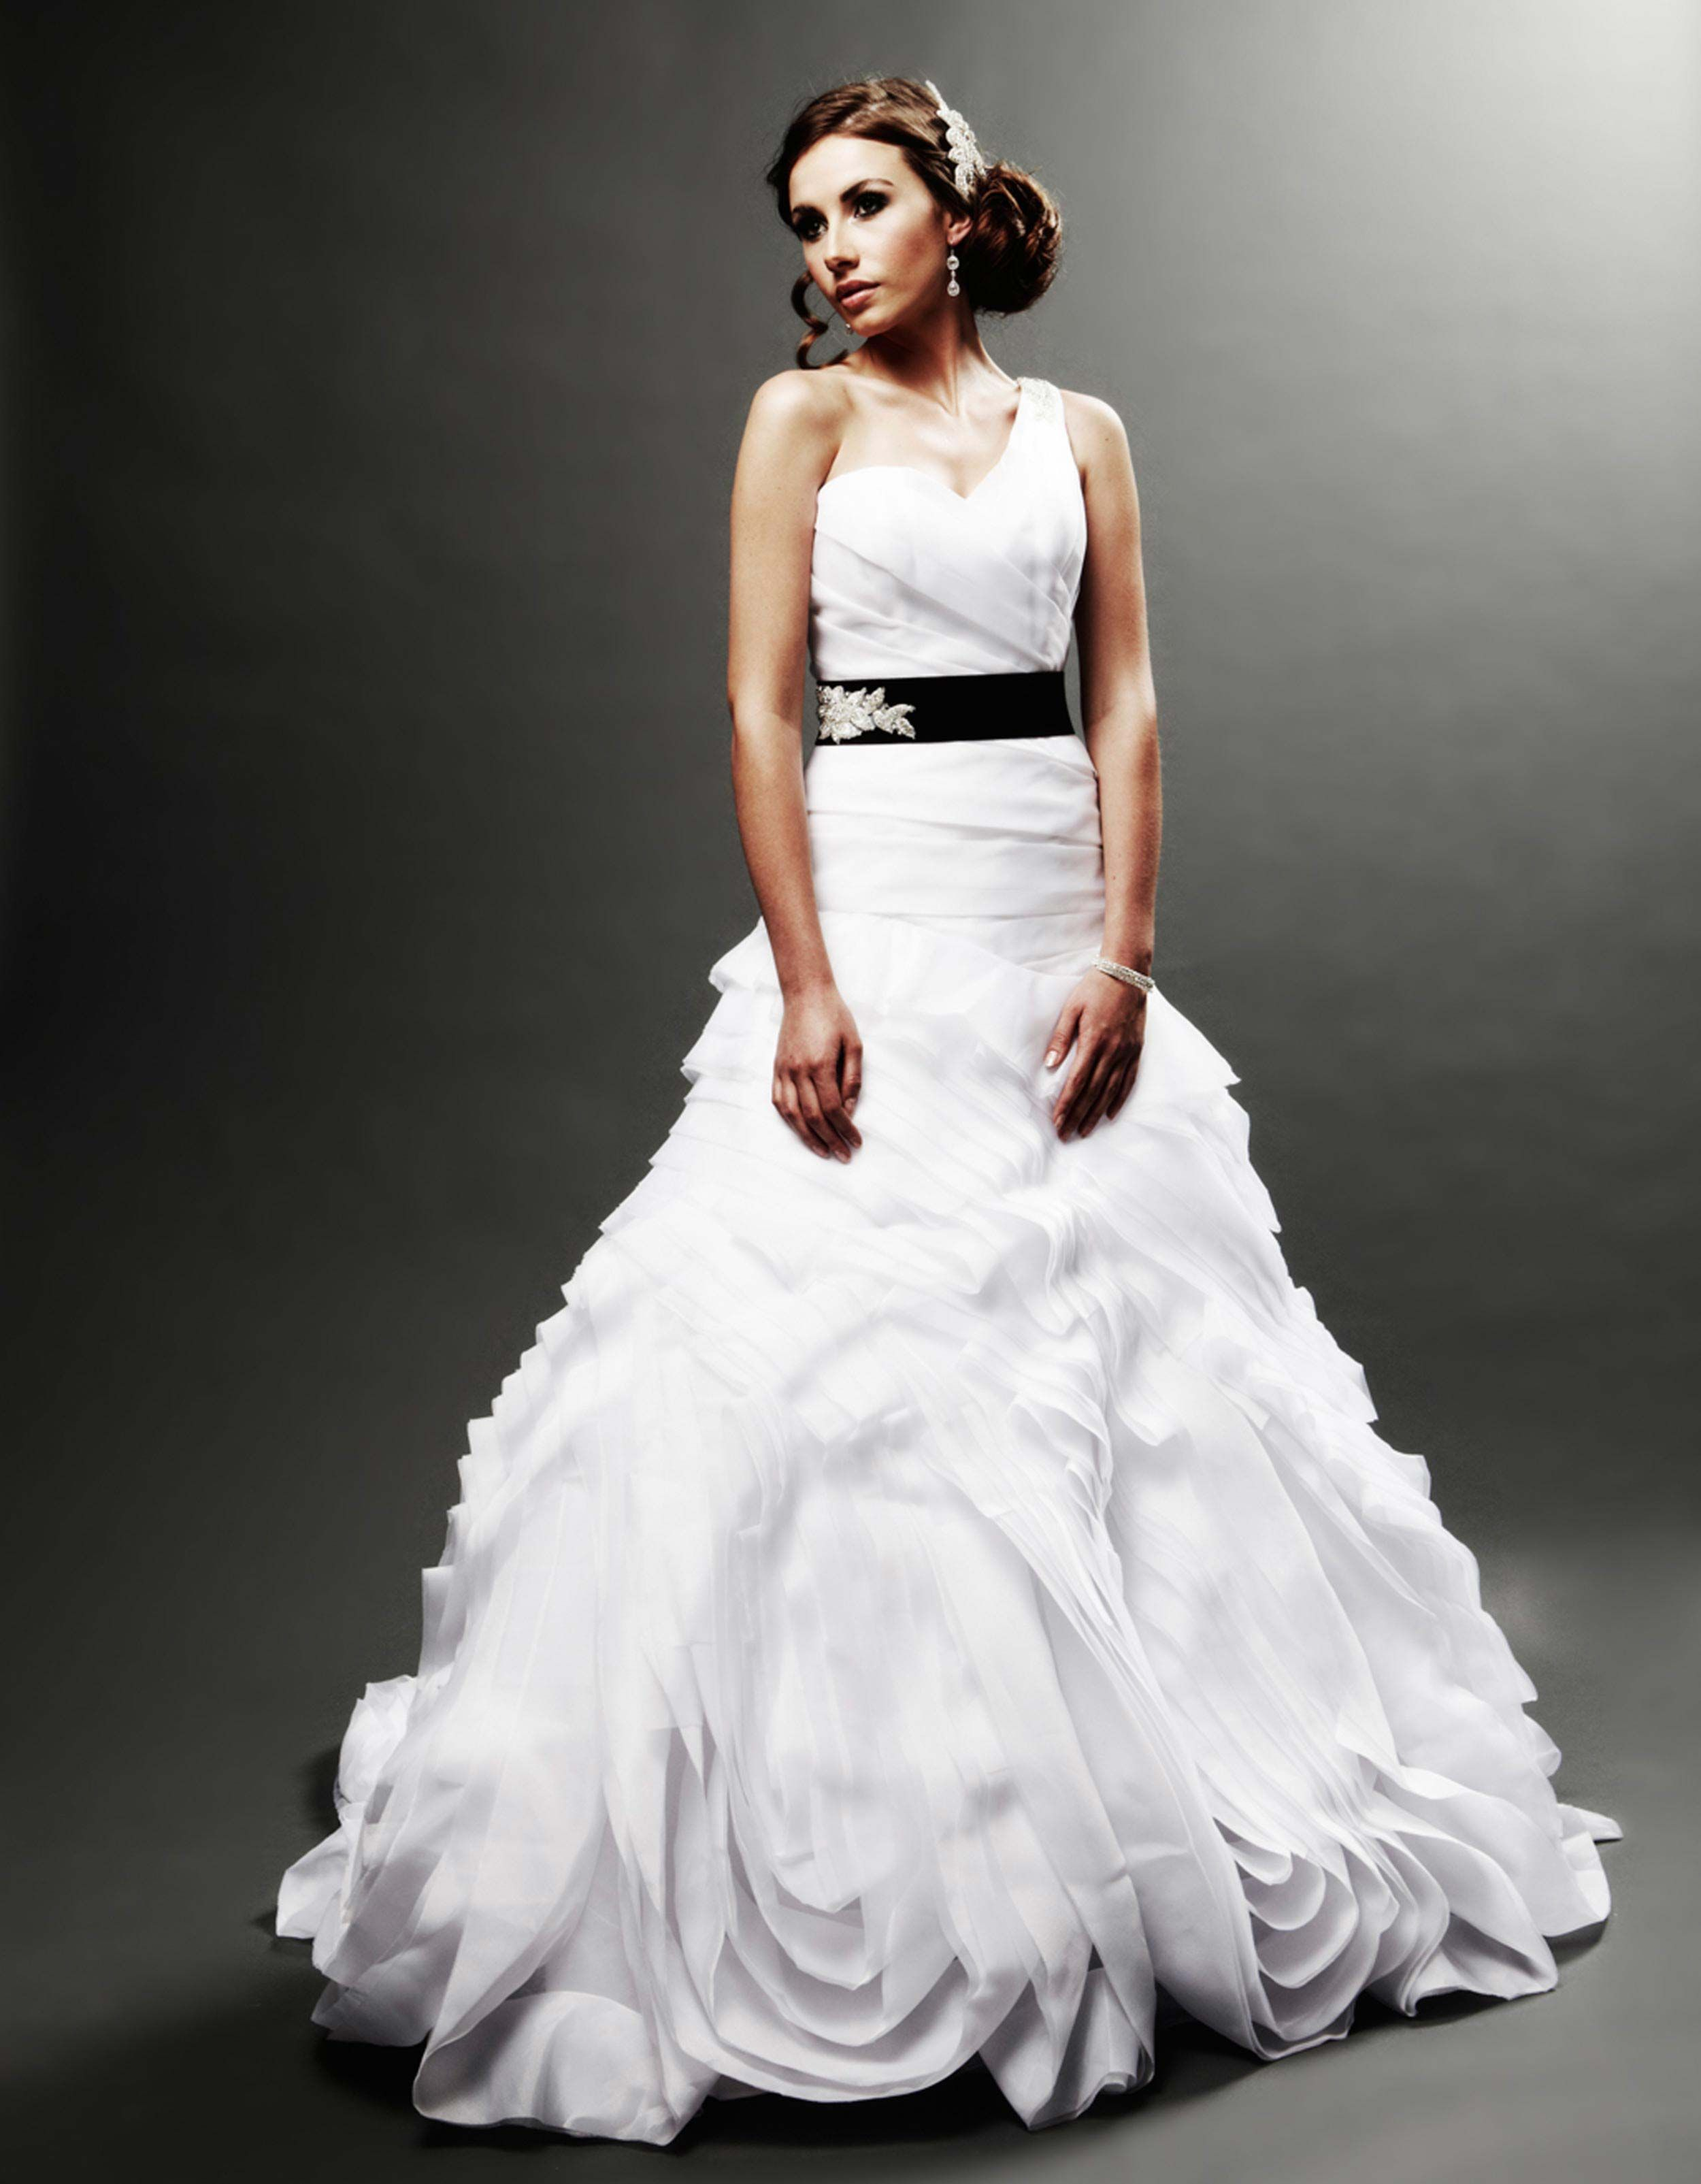 ballerina punk wedding dress - Google Search | Awesomeness ...